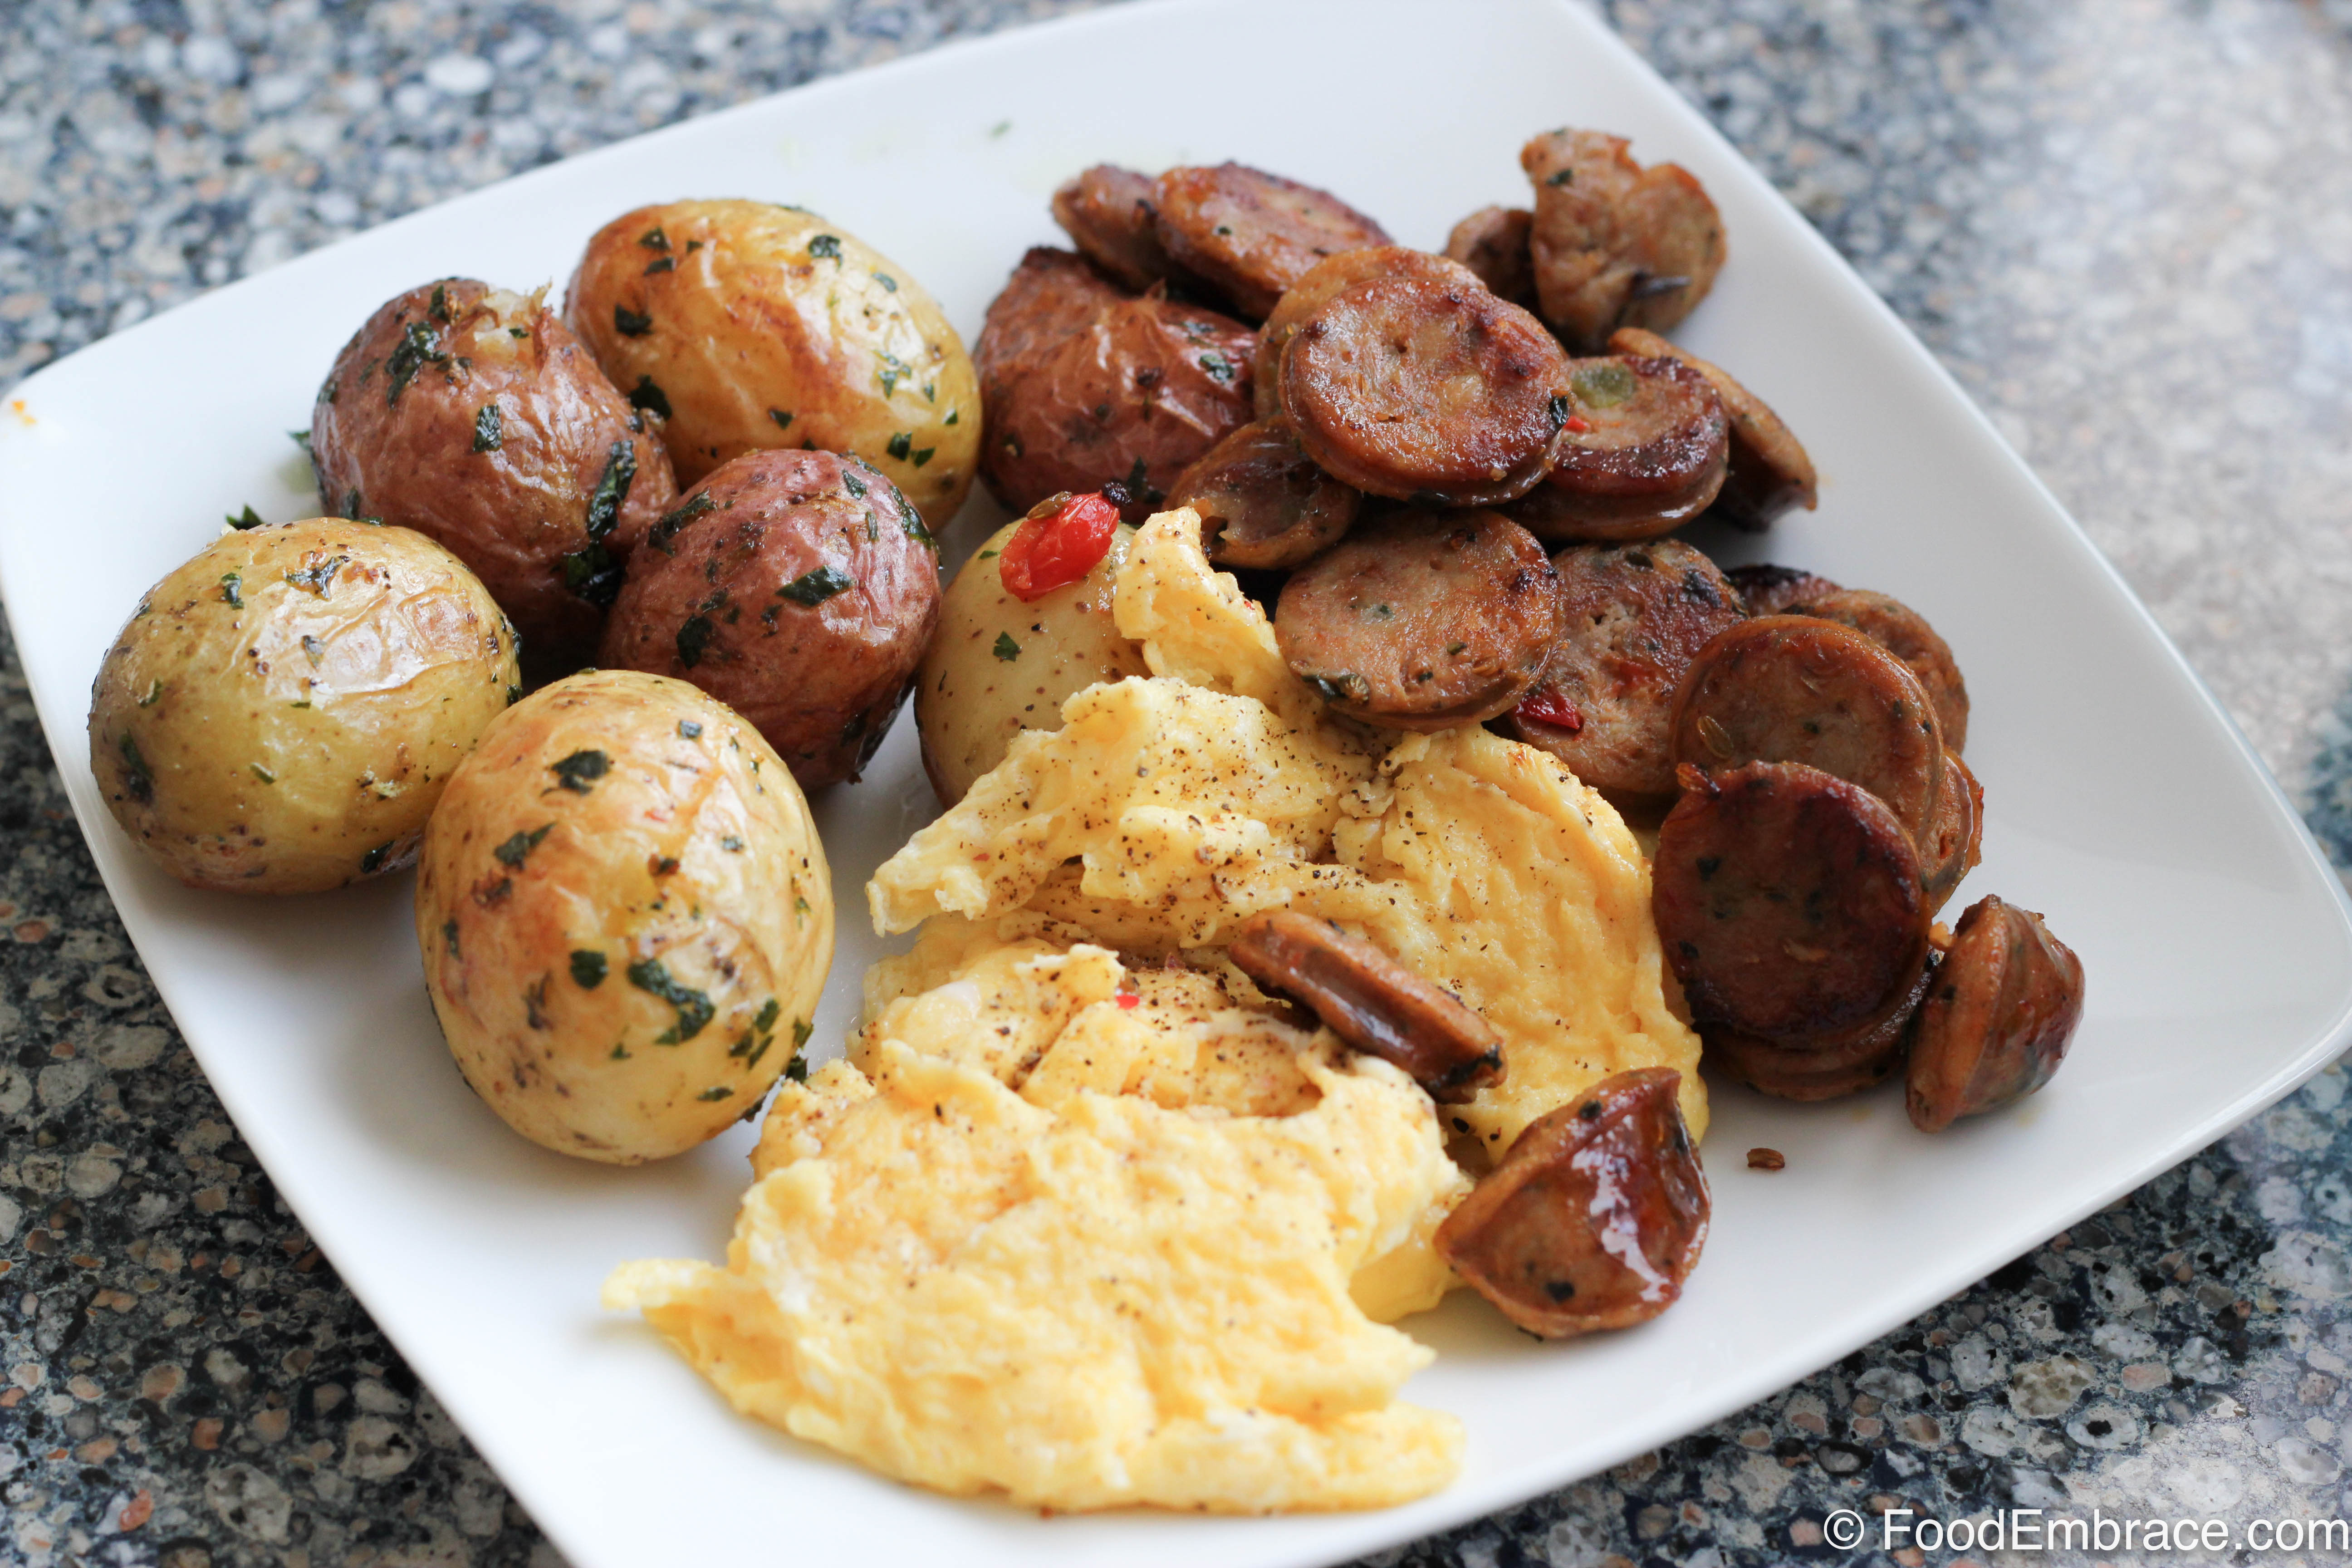 Eggs, potatoes, sausage